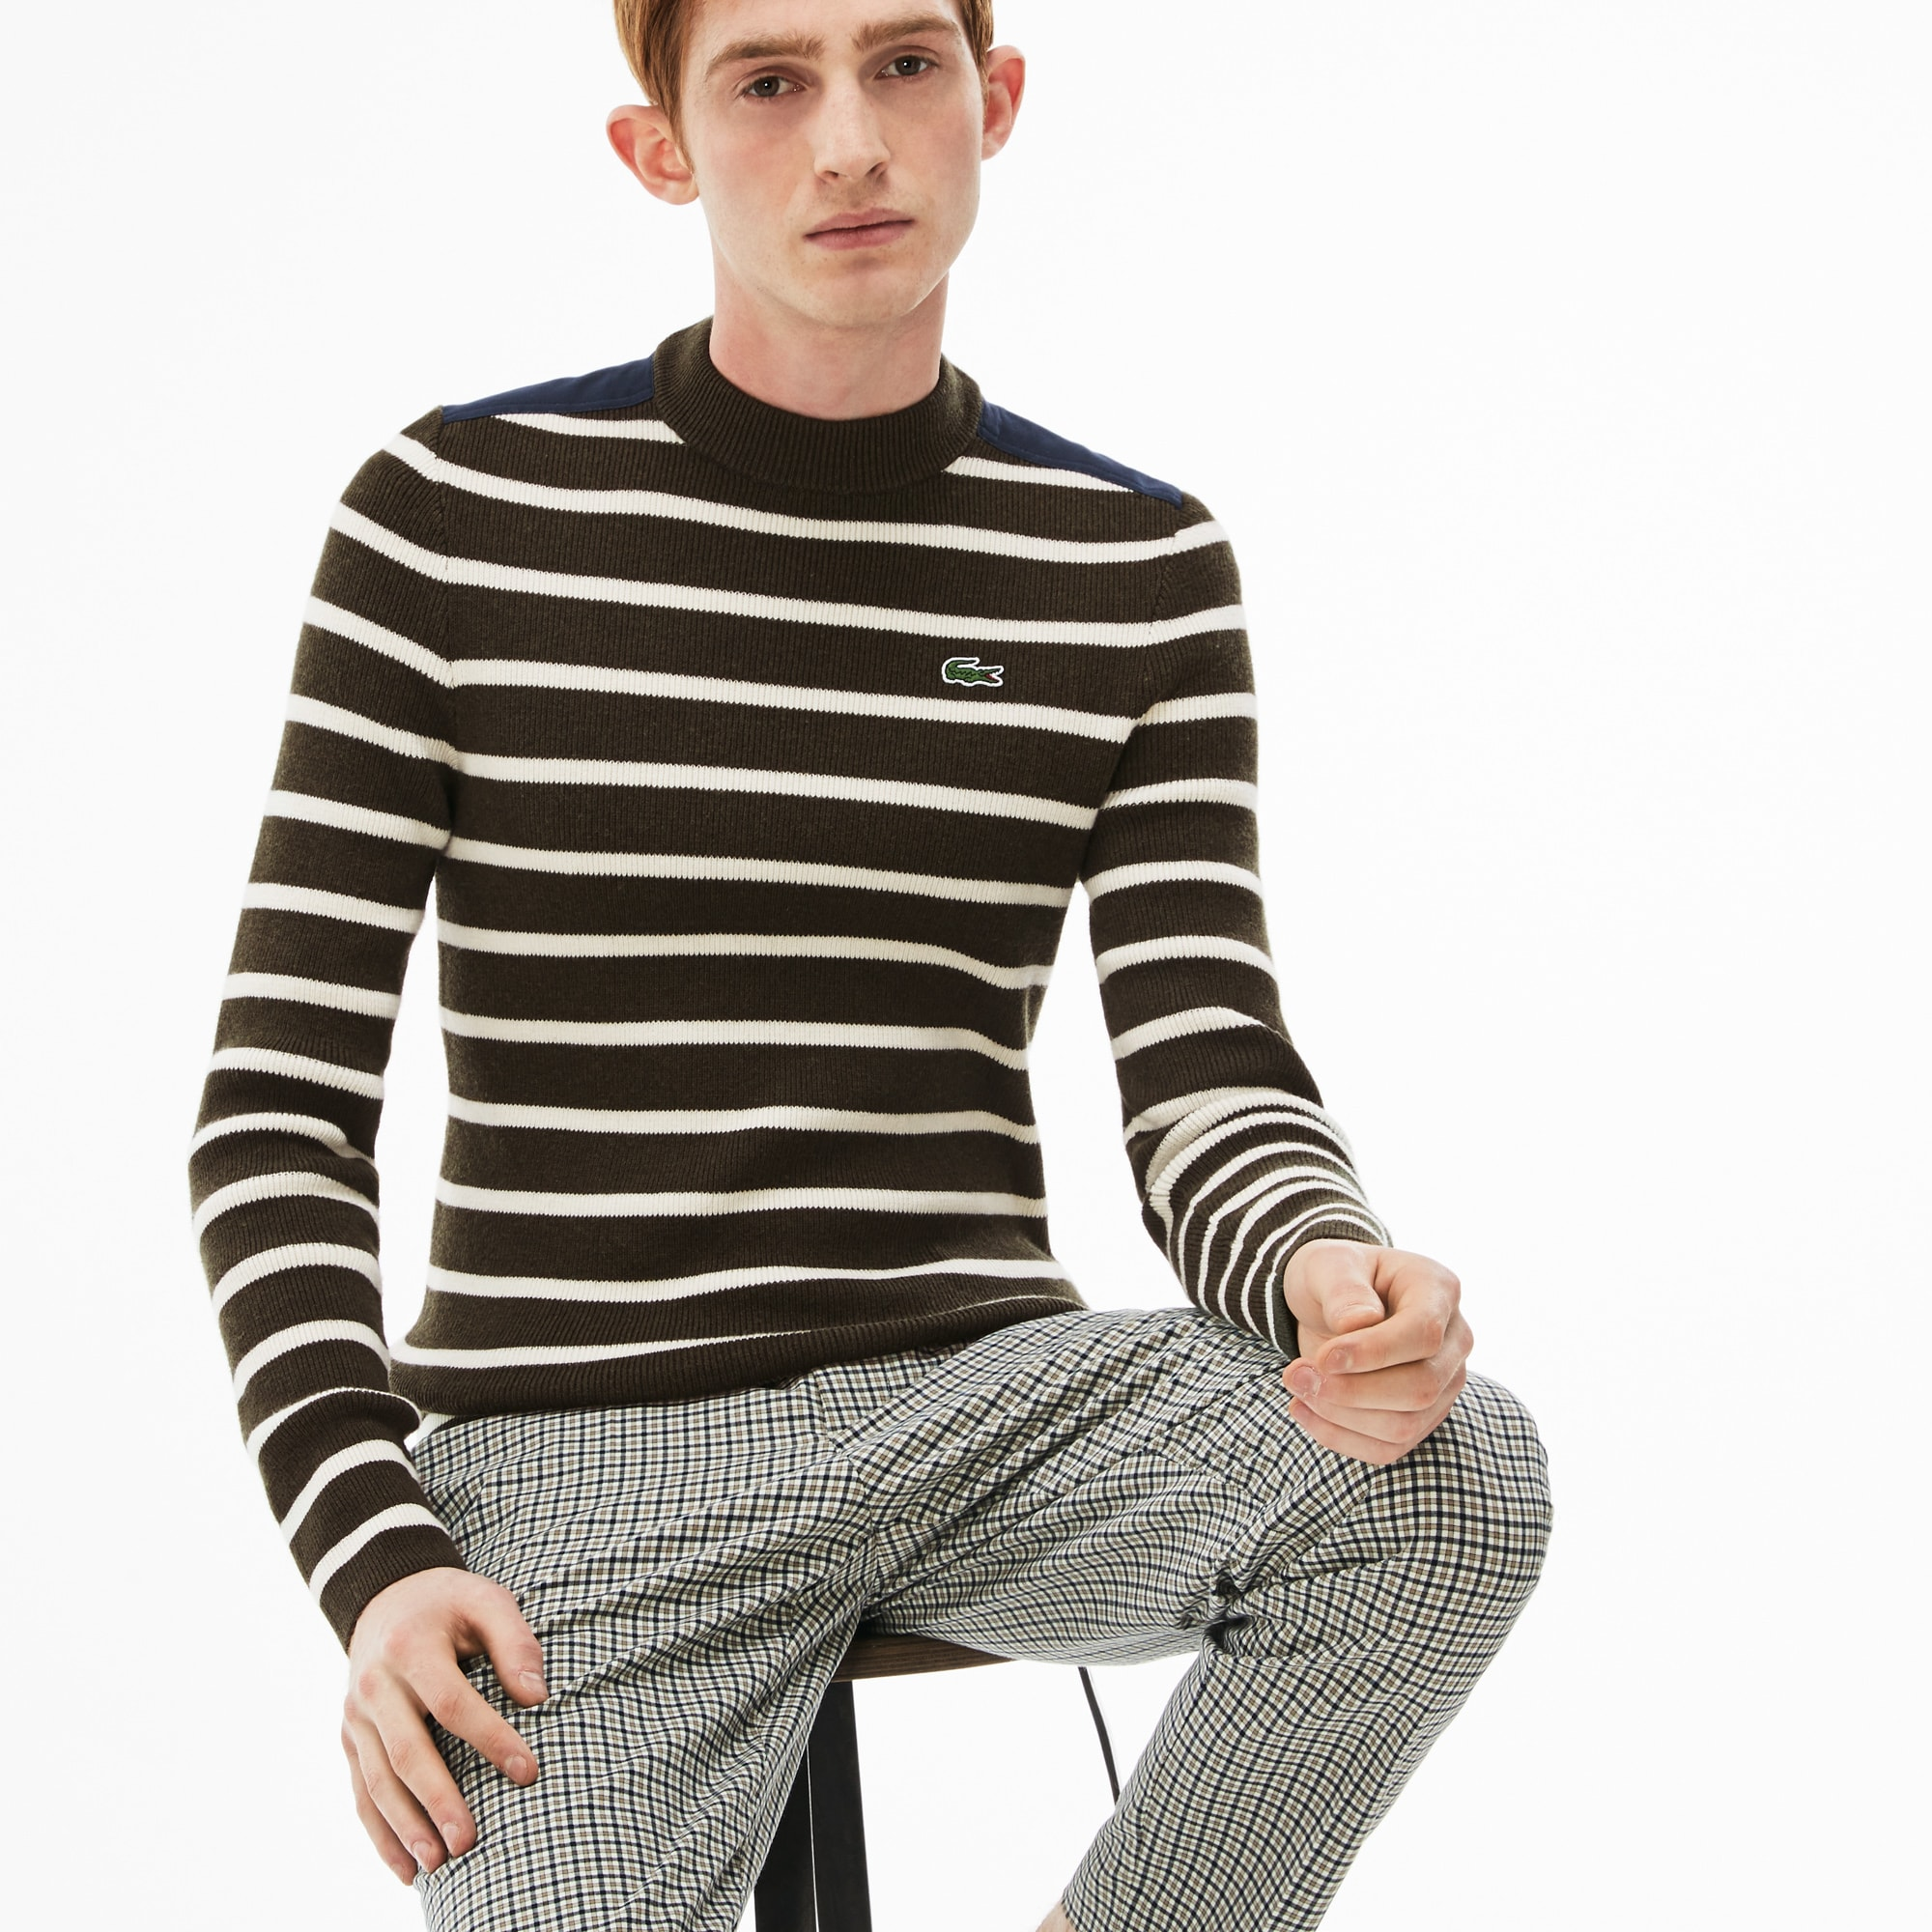 Men's Lacoste LIVE Crew Neck Striped Interlock Sweater